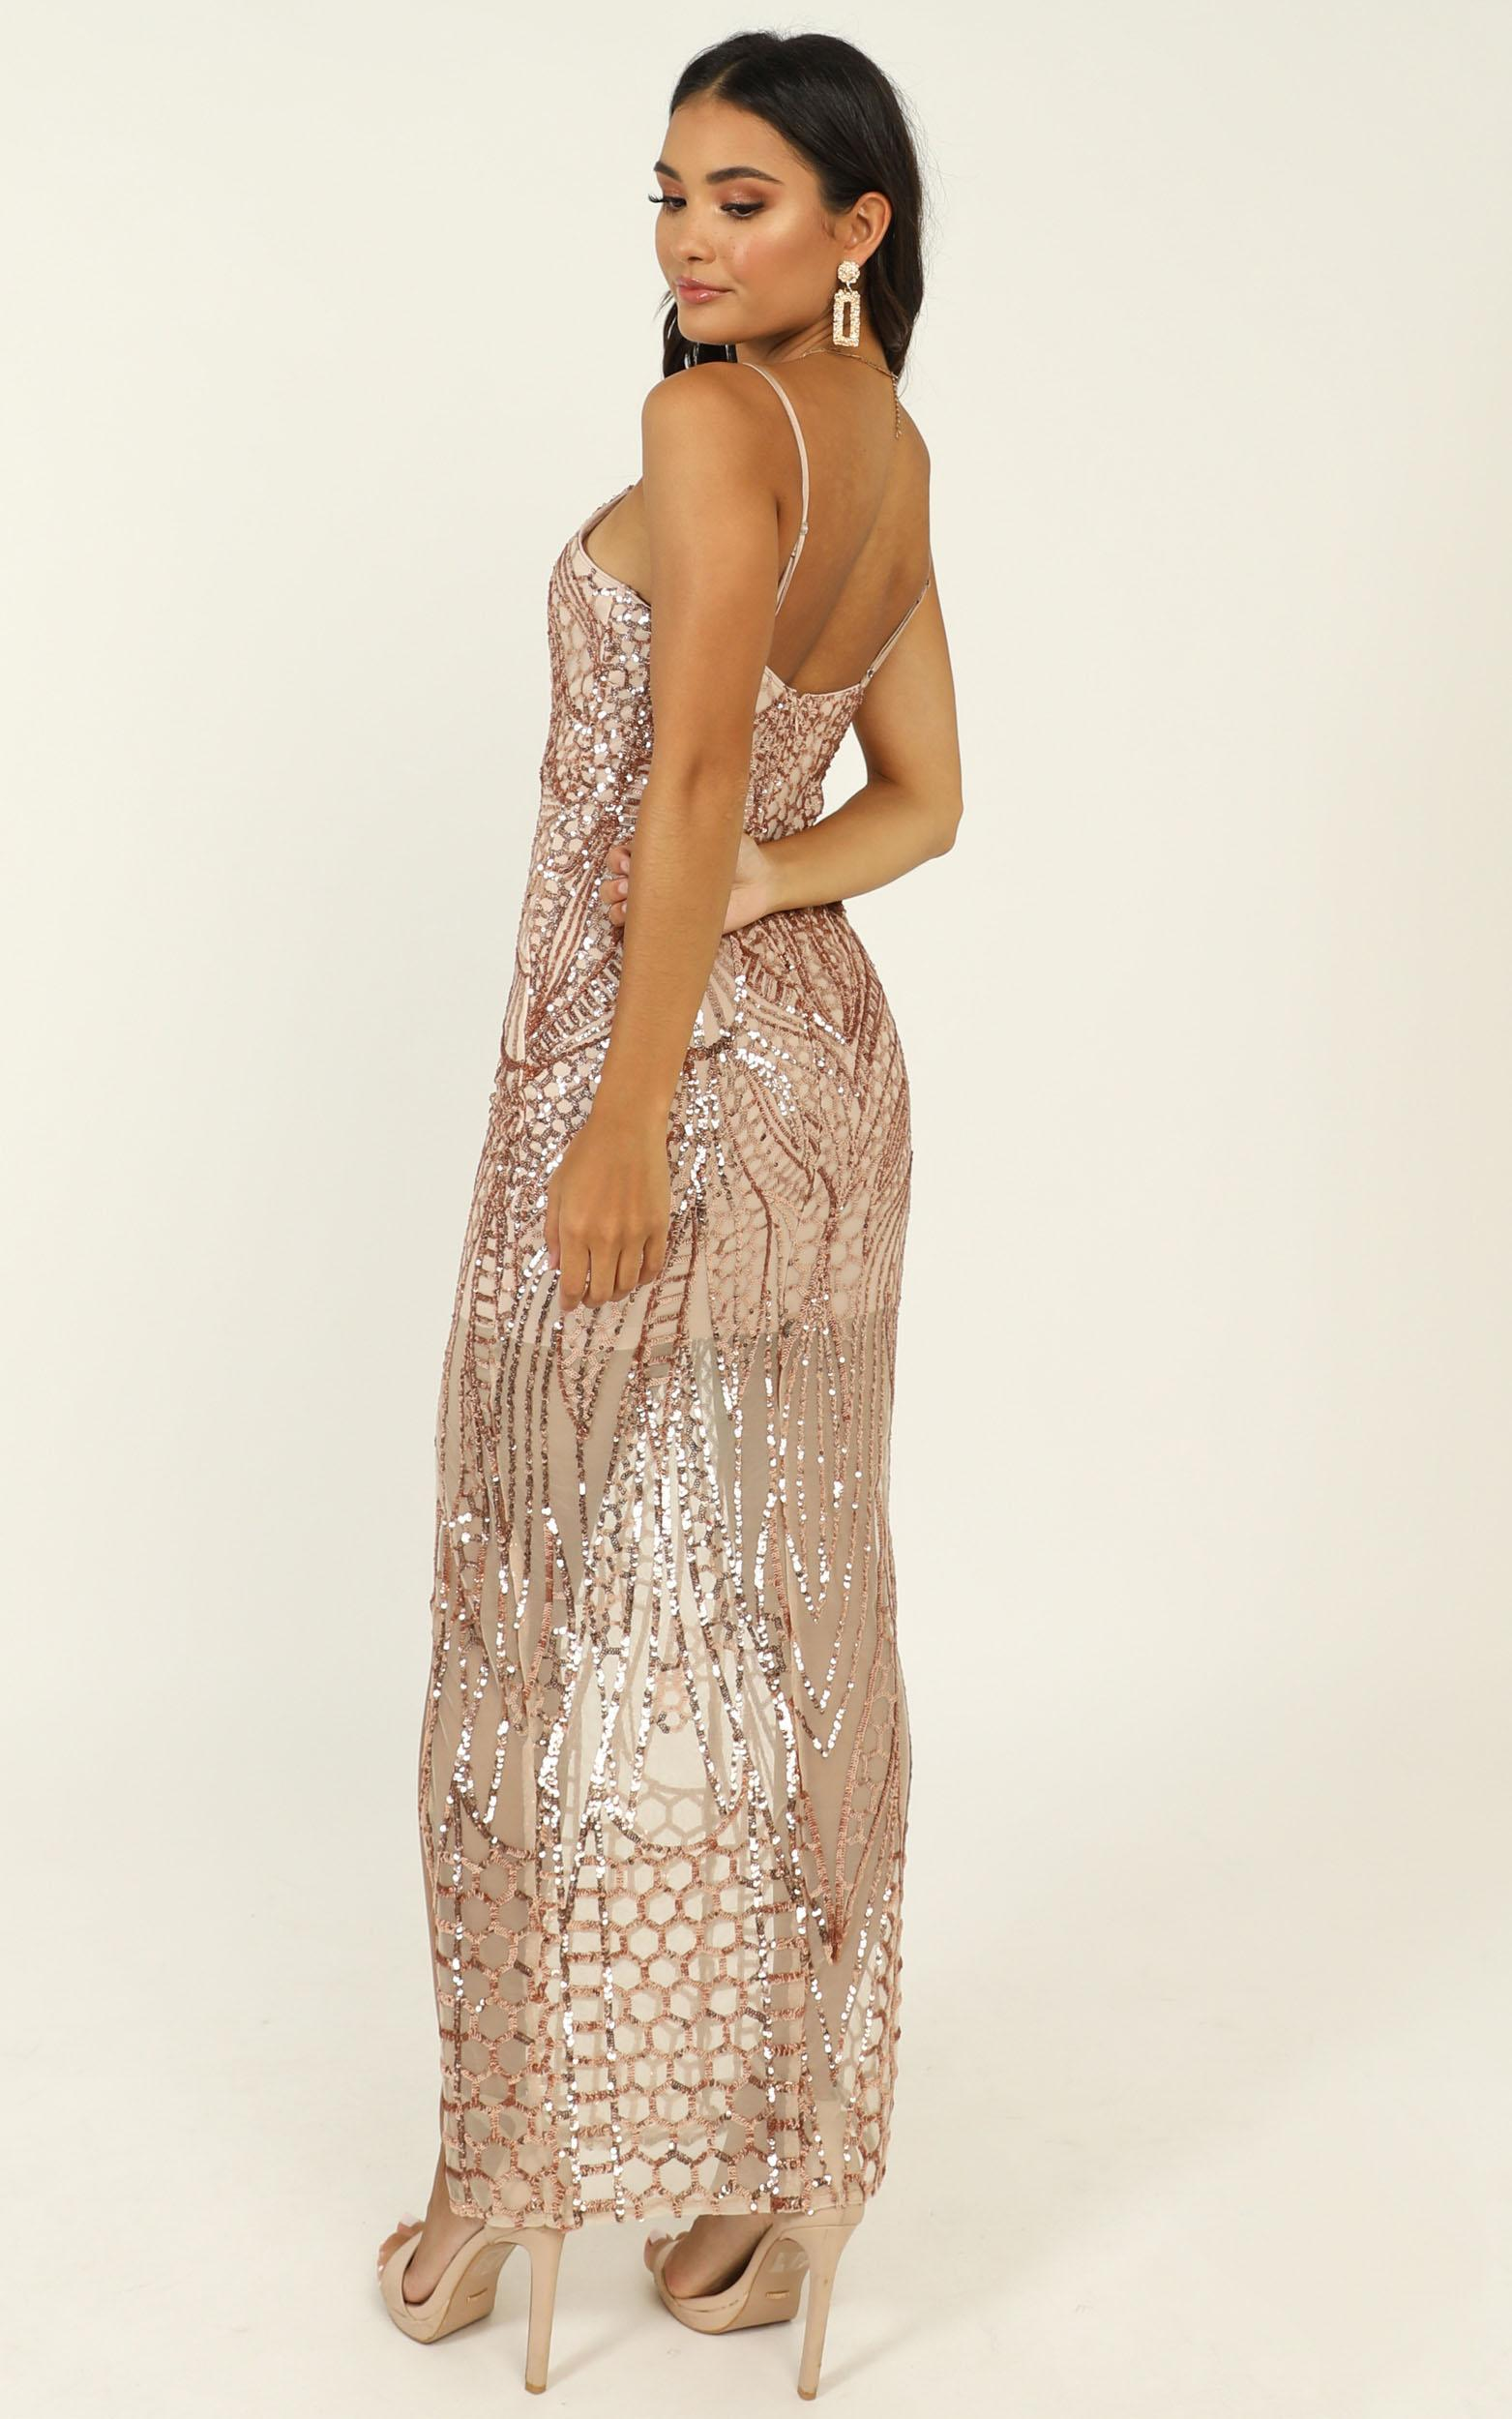 Be My Lover Dress In Rose Gold Sequin  - 4 (XXS), Gold, hi-res image number null